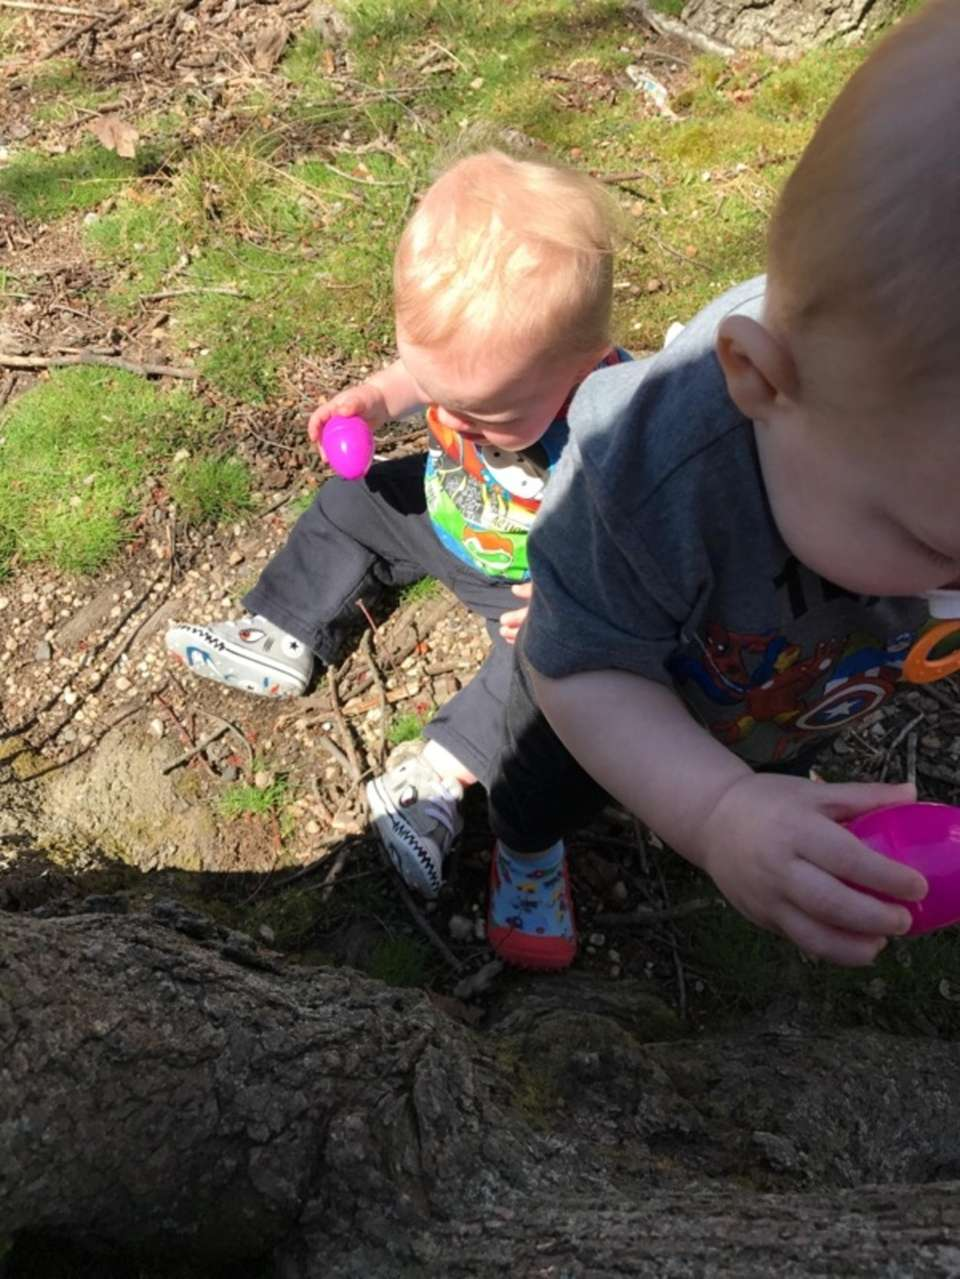 Luke and Liams 1st Easter egg hunt!!